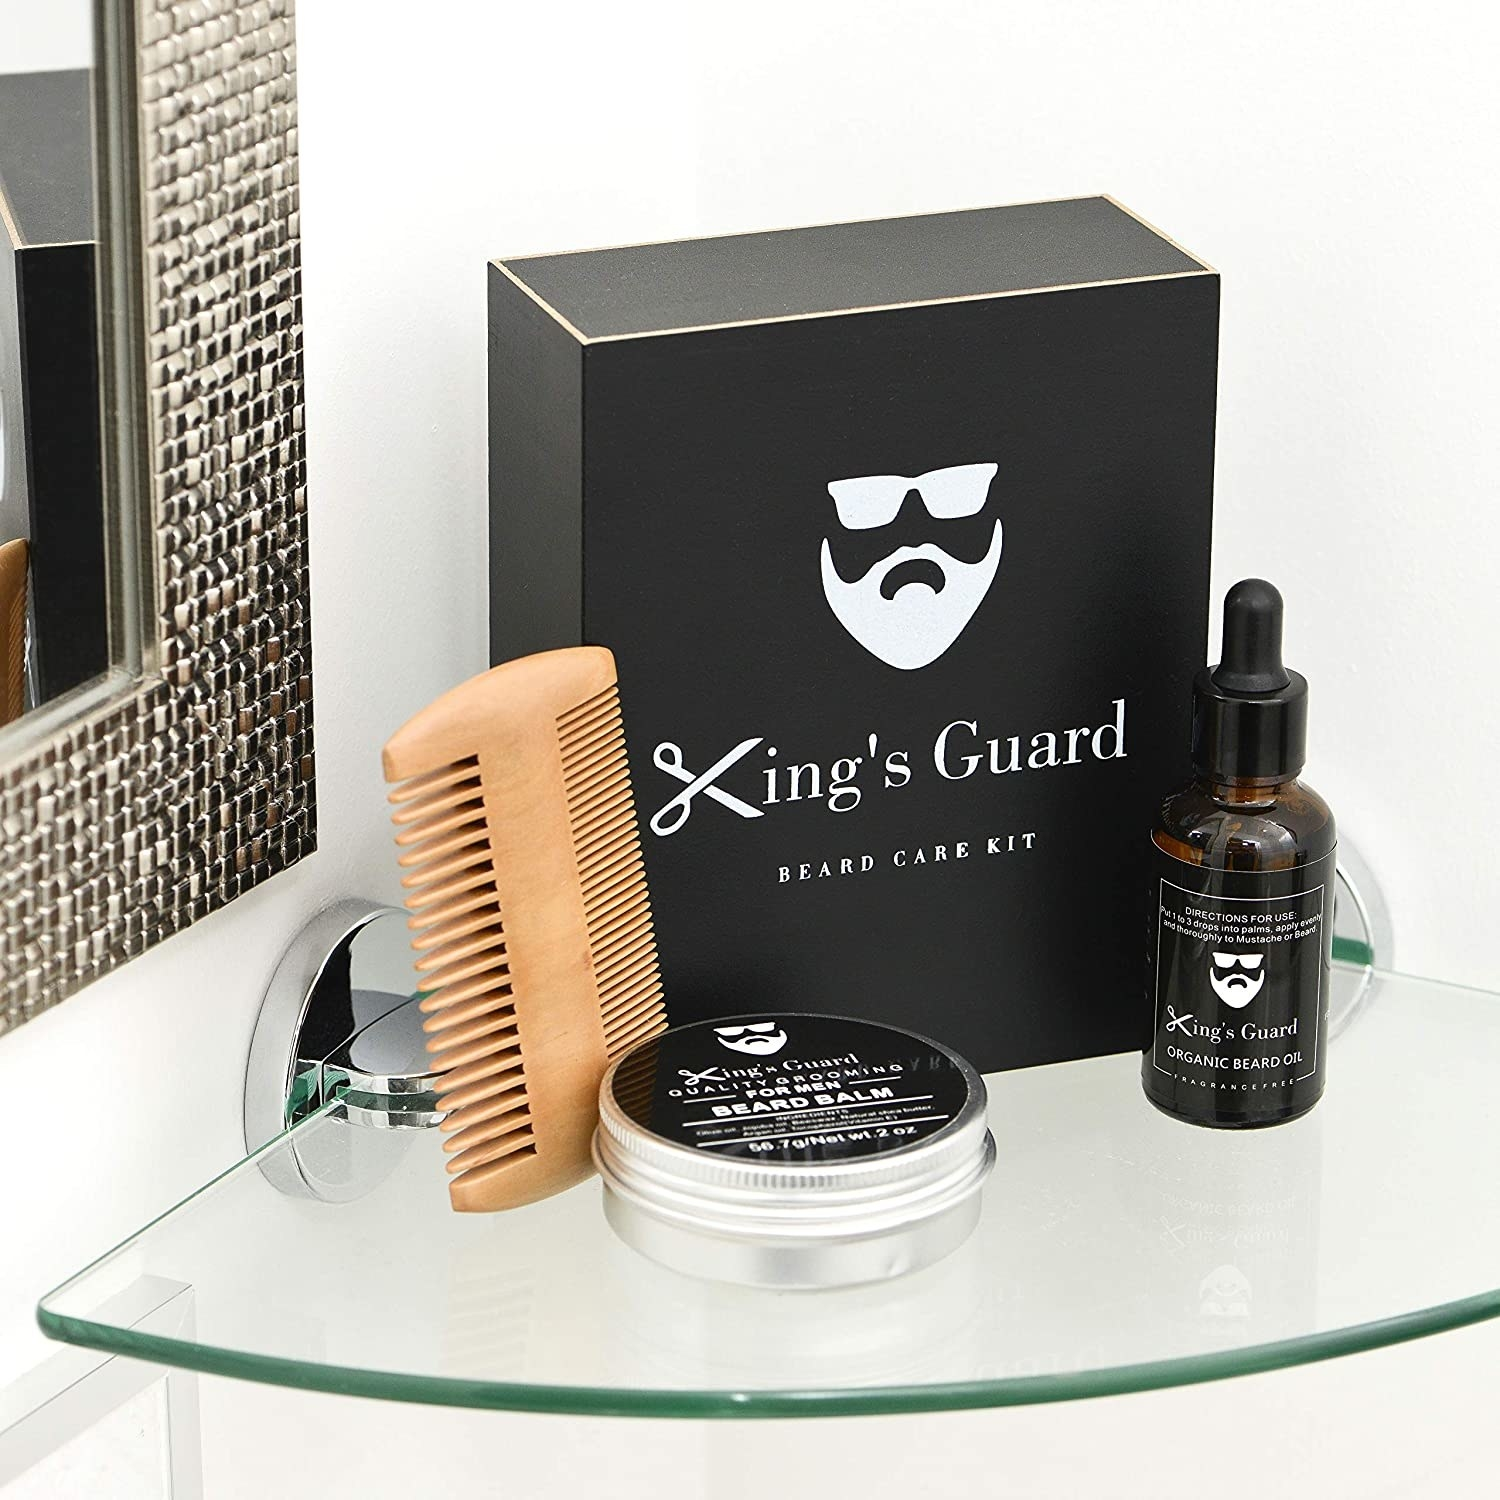 A double sided comb, beard balm, and beard oil together with their gift box